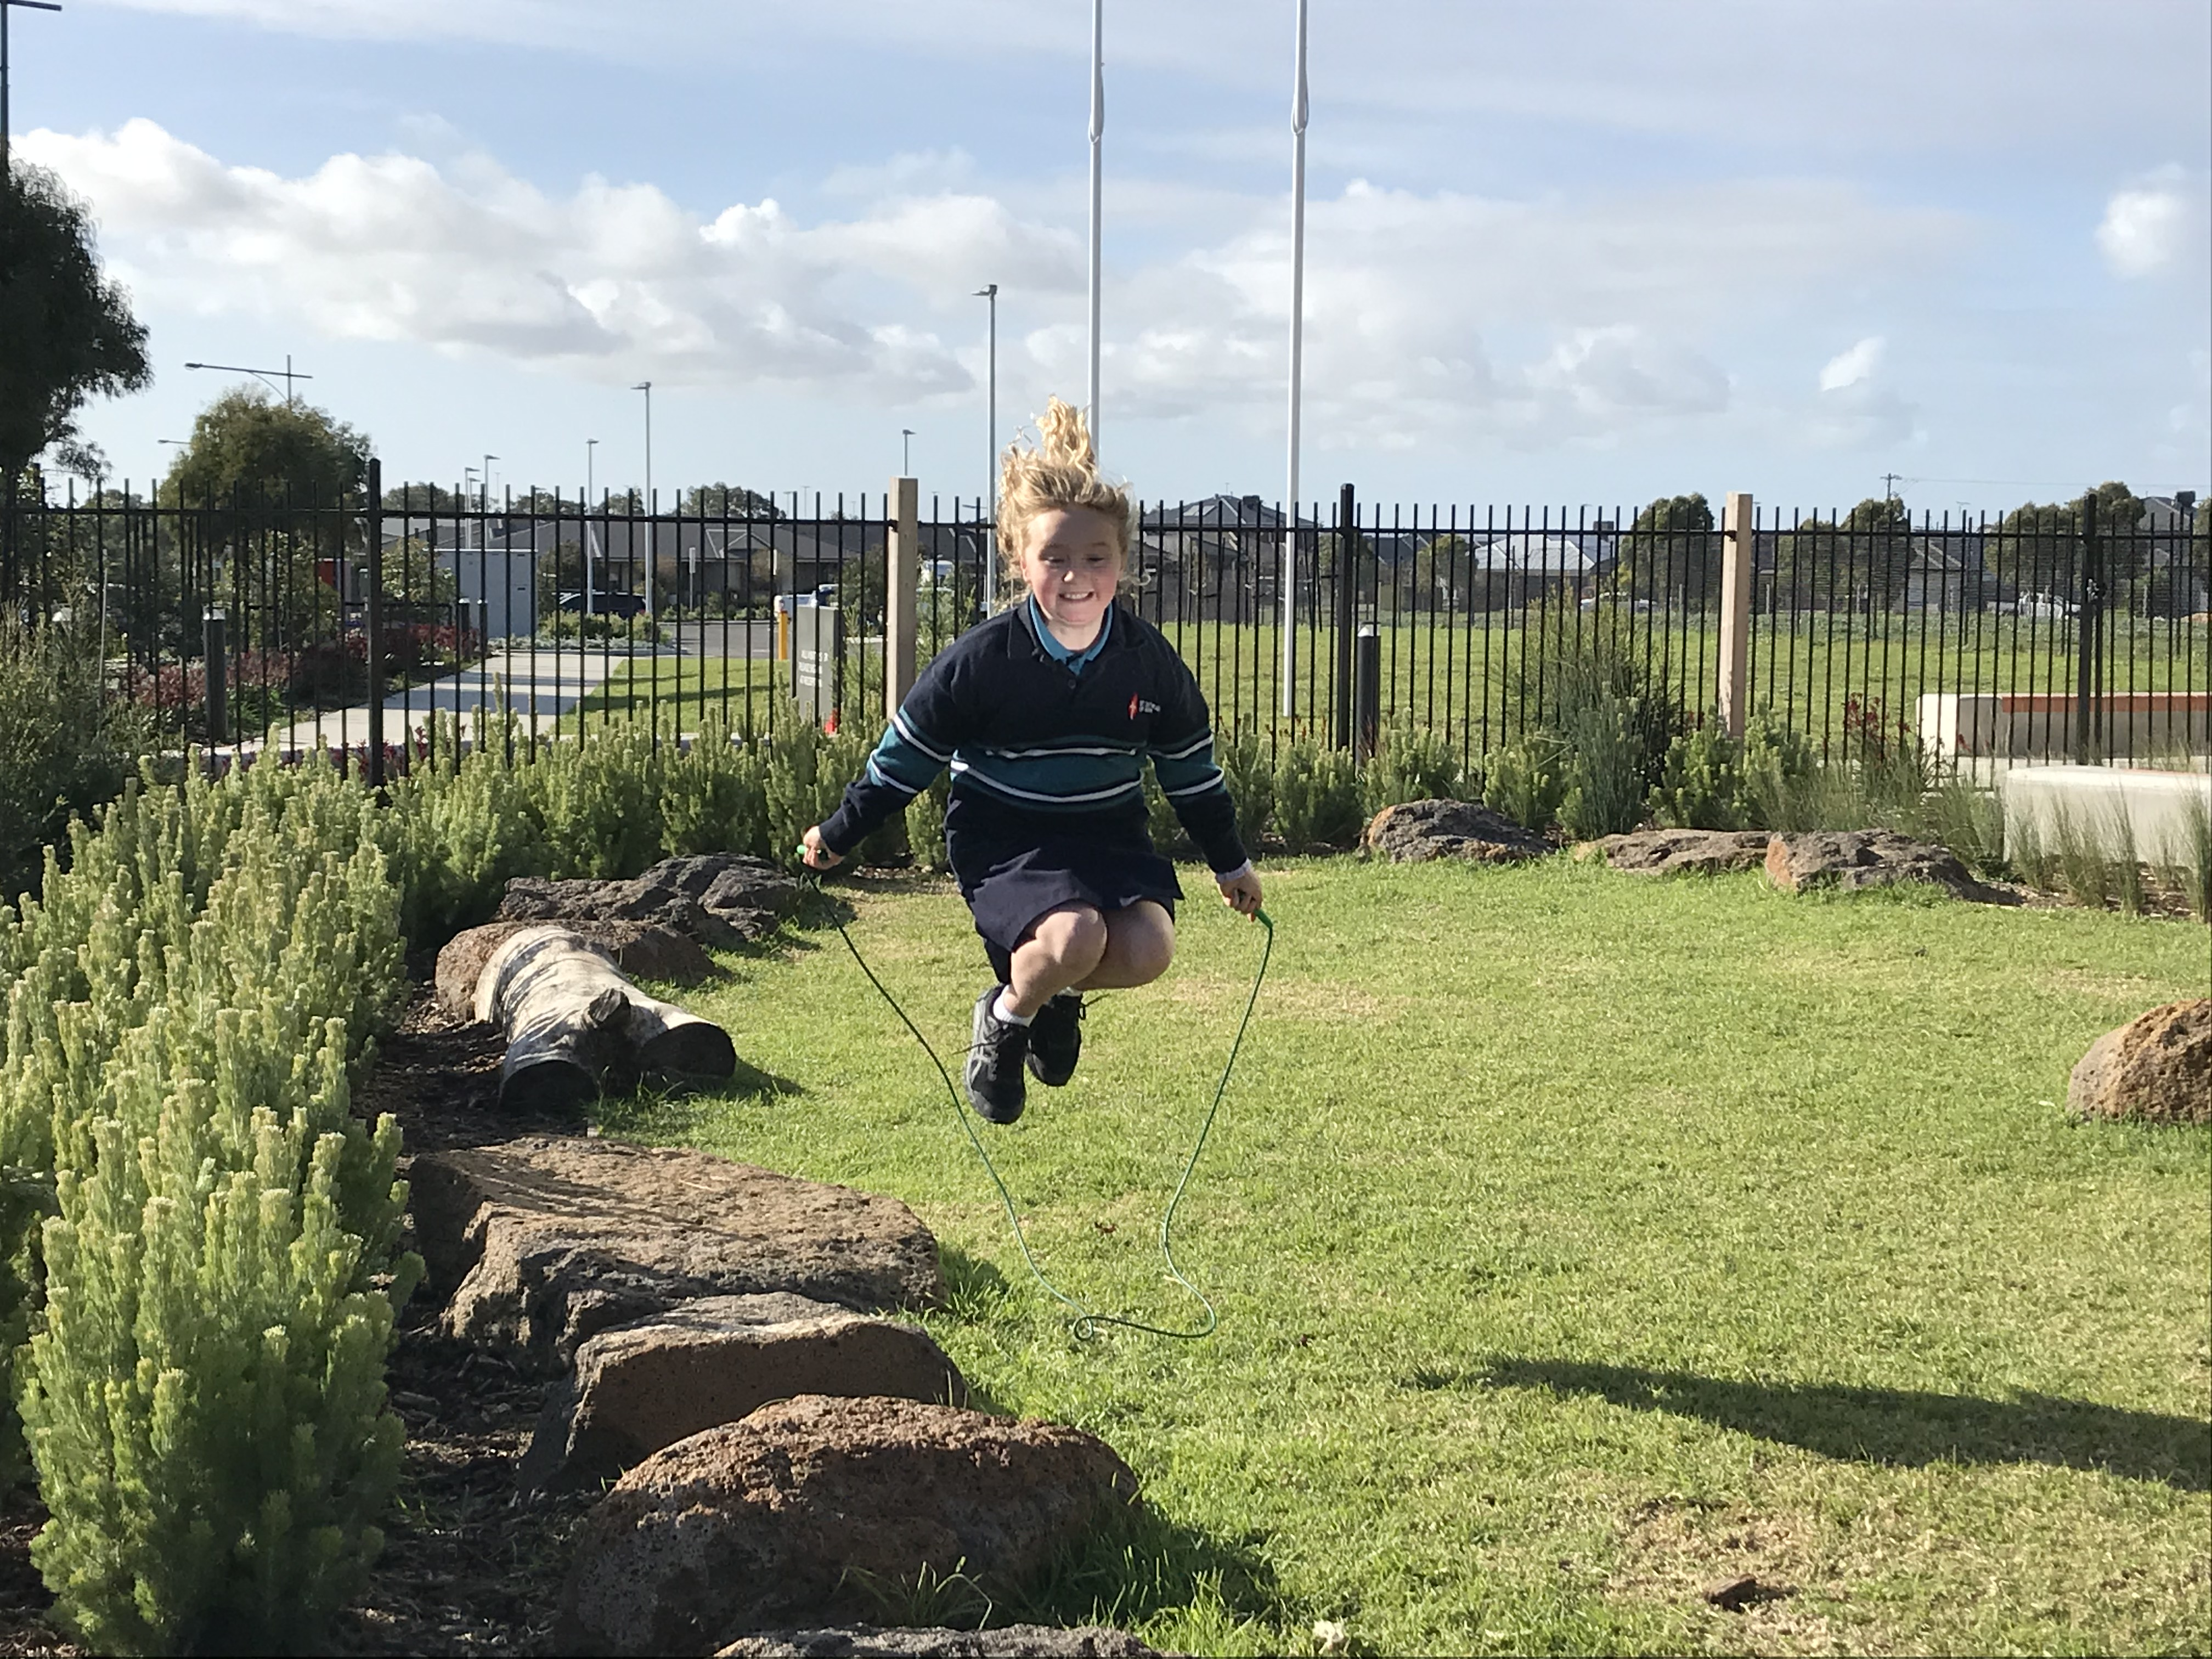 Matilda signs up for Jump Rope just one month after open-heart surgery